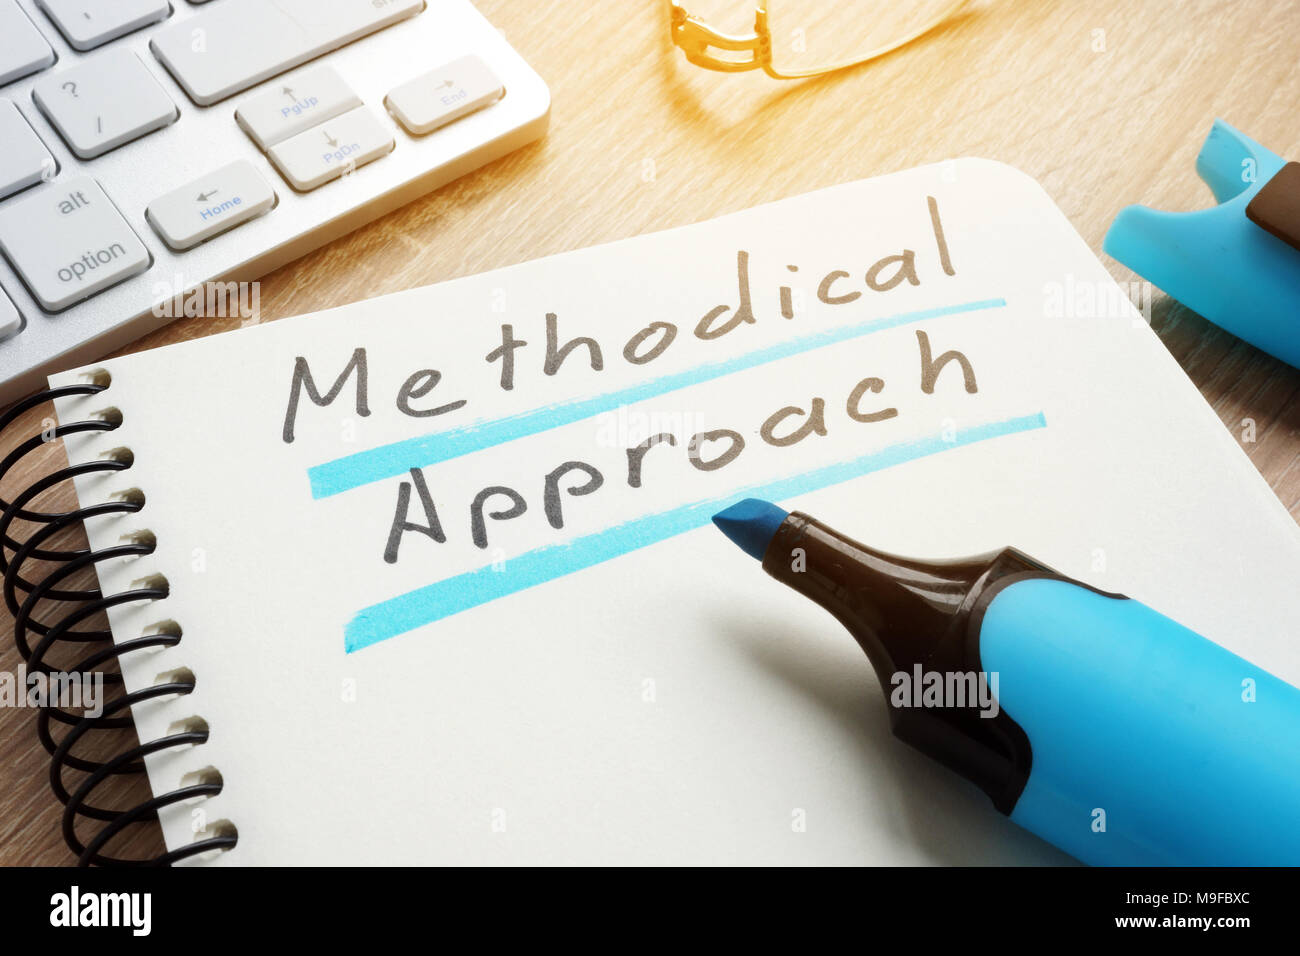 Methodical Approach written on a page of the note. - Stock Image